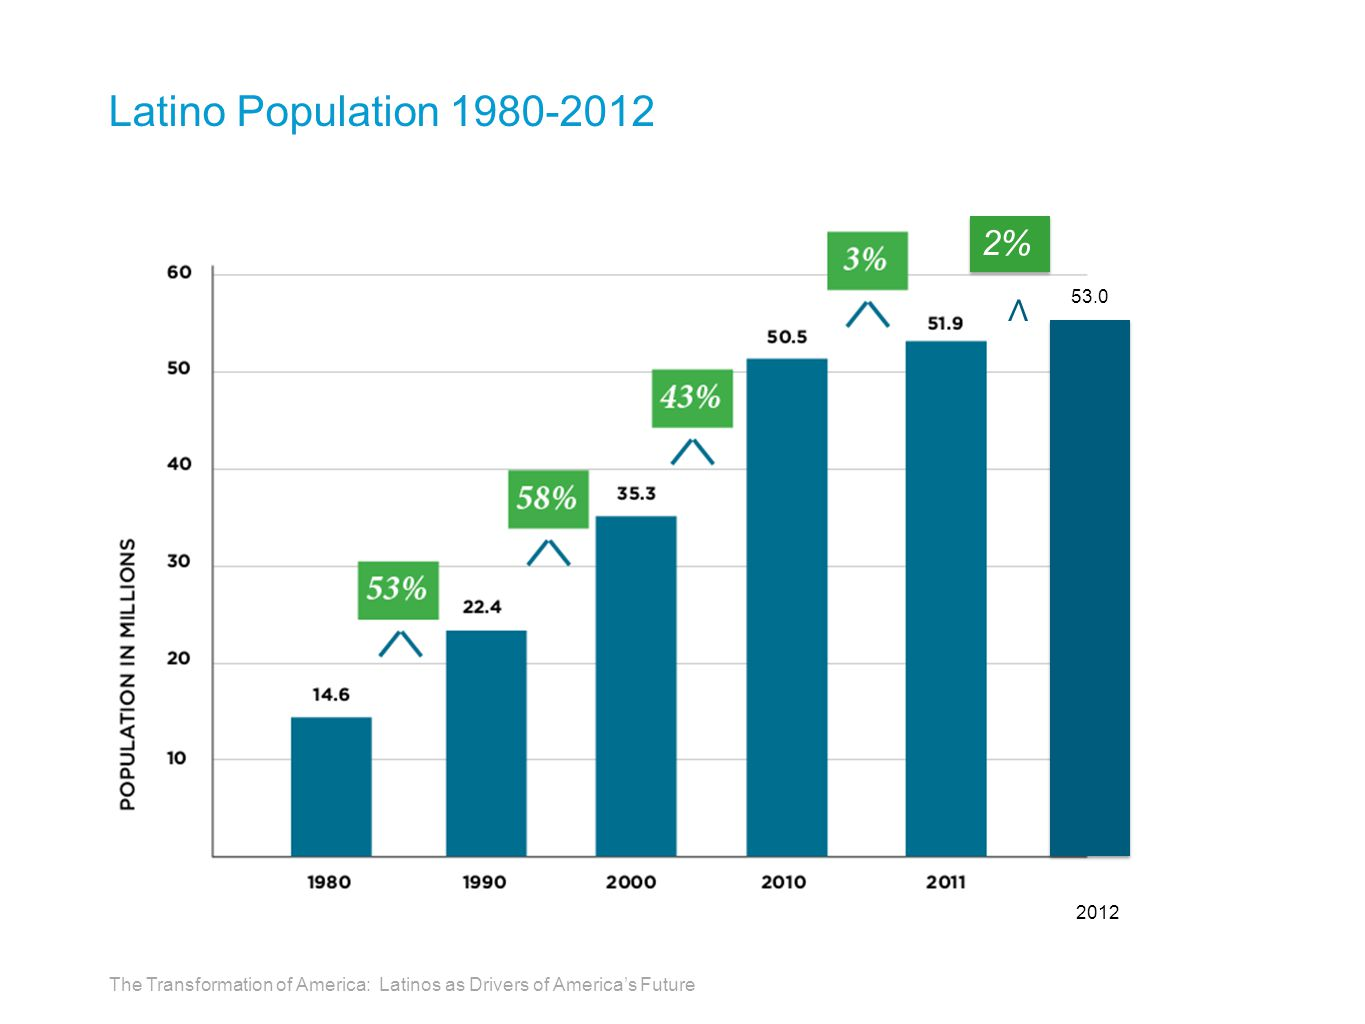 Nearly 1 out of every 4 U.S.residents under 18 is Latino (24%).